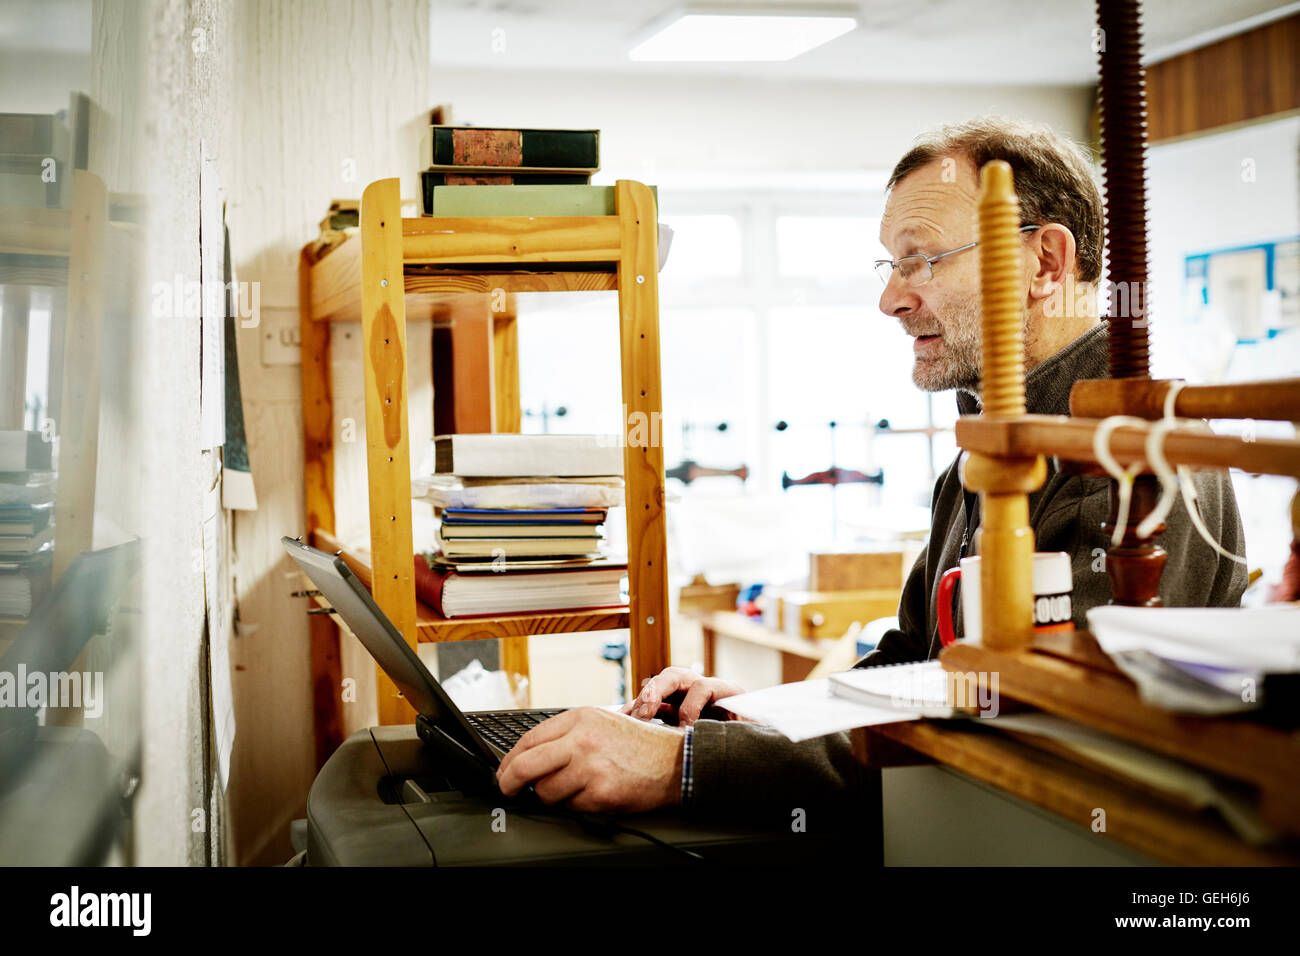 A man using a laptop computer on a bookbinding business. - Stock Image